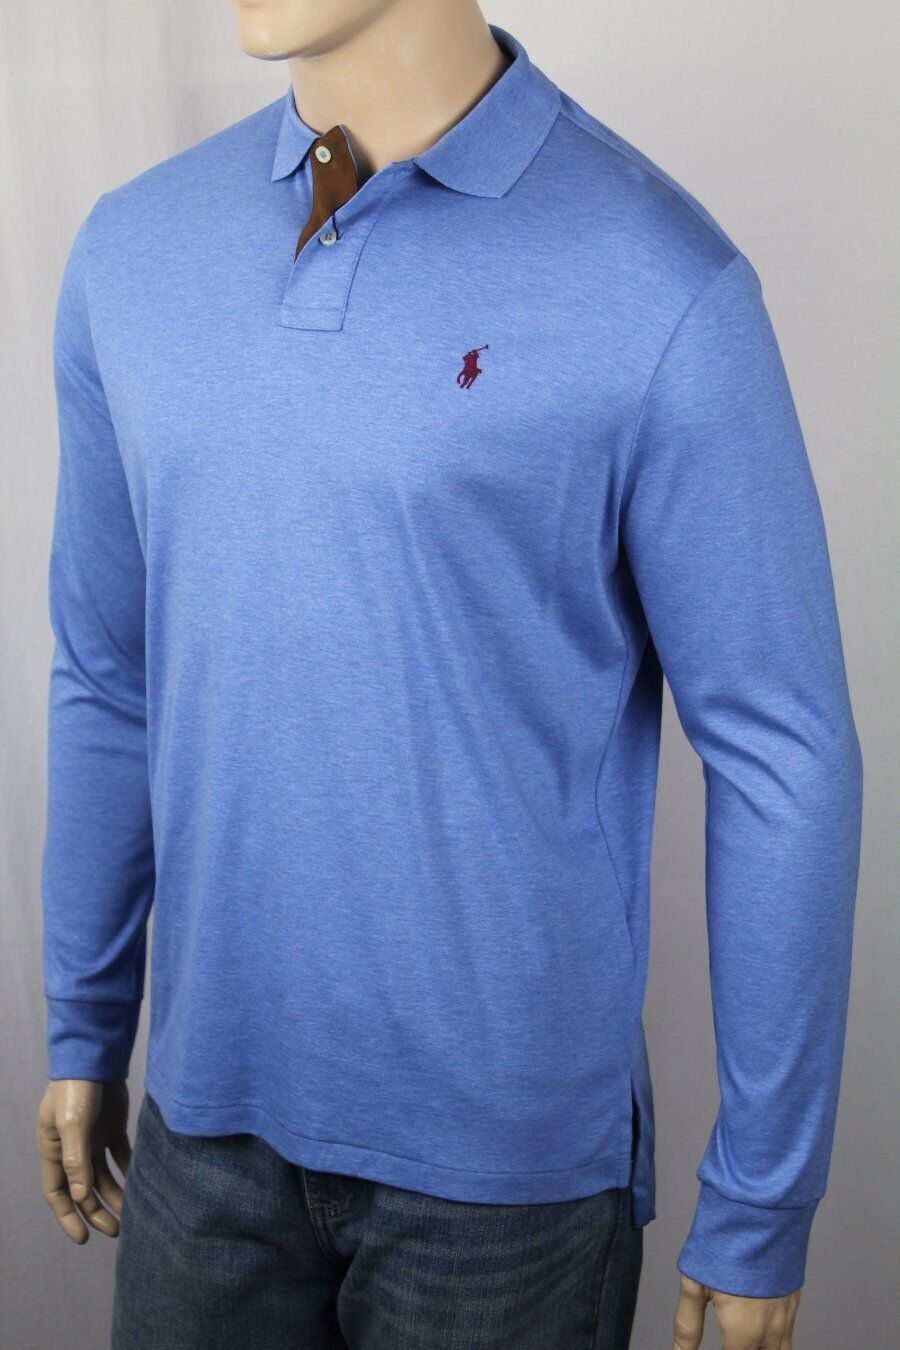 Ralph Lauren bluee Pima Soft Touch Long Sleeve Polo Shirt Classic Fit Suede NWT